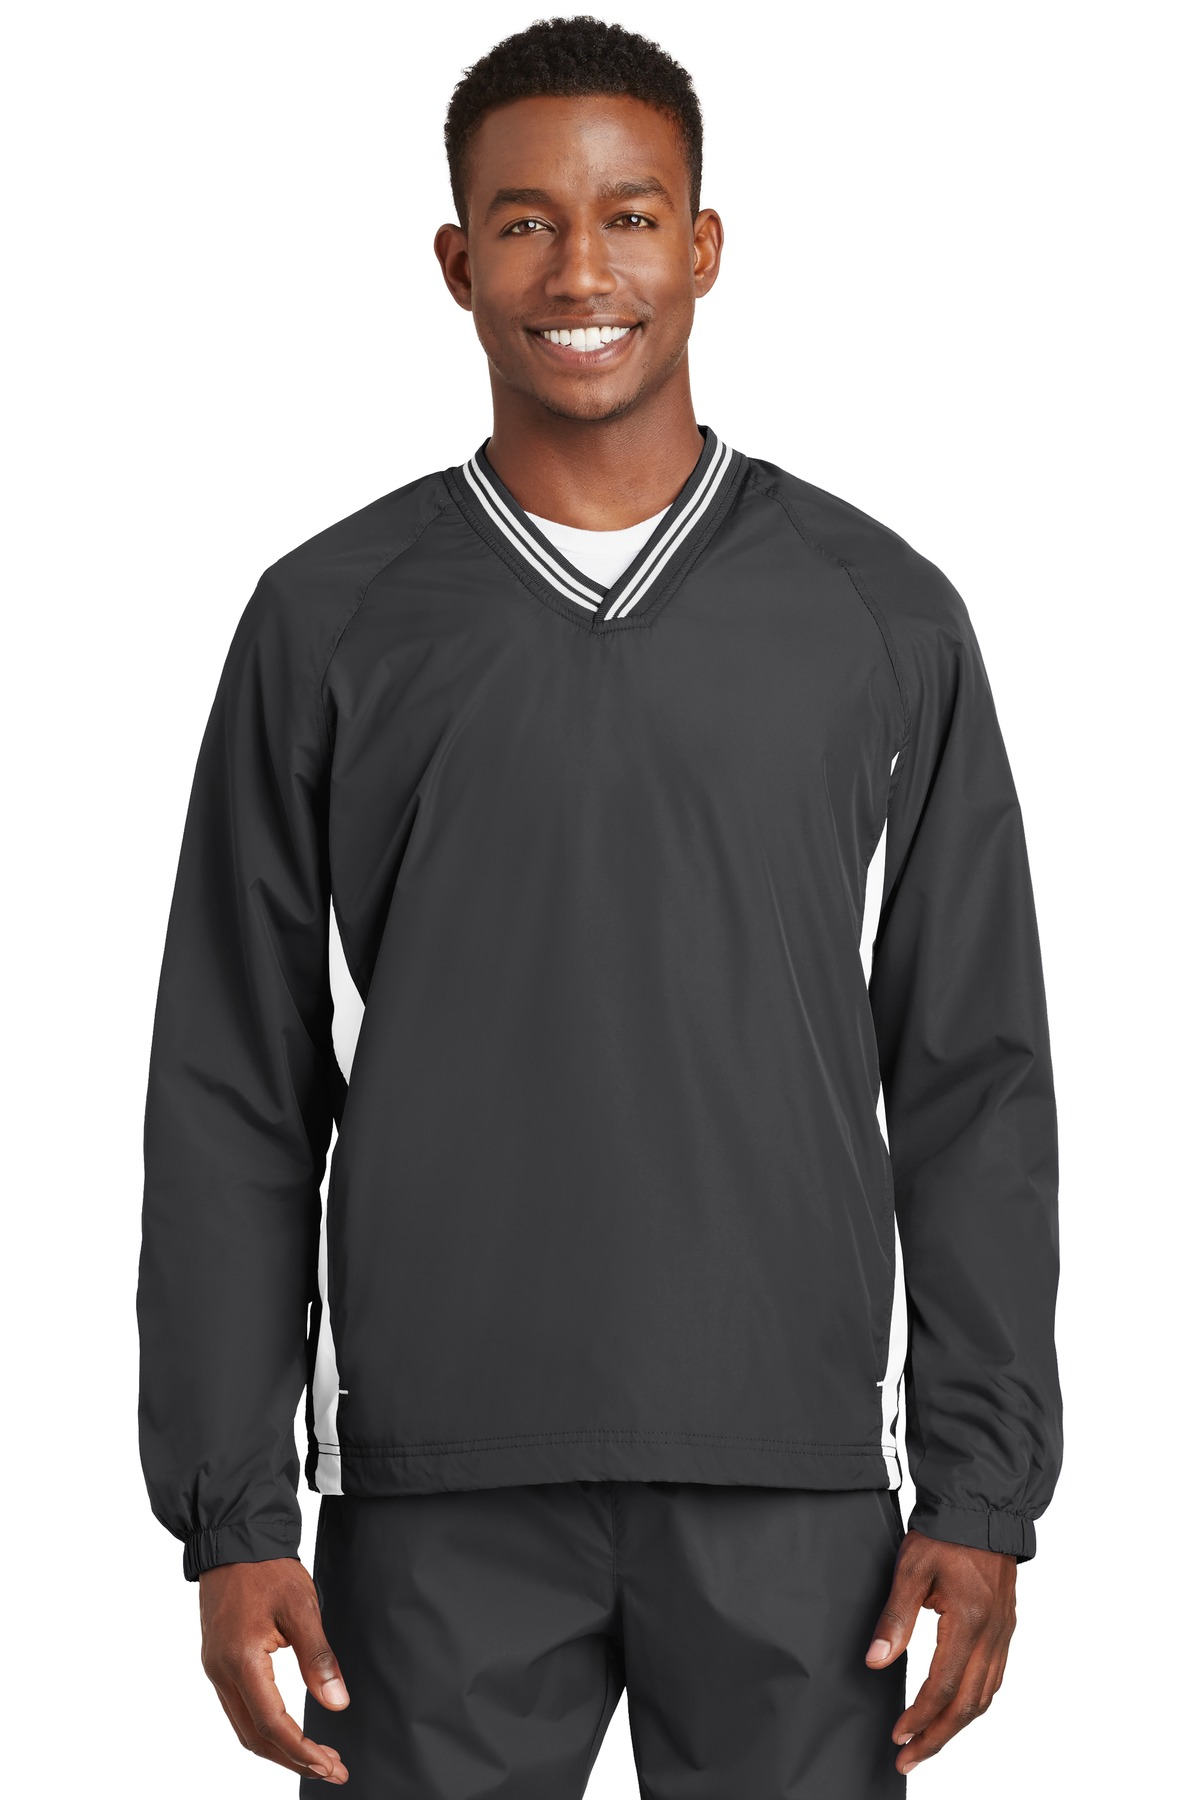 Sport-Tek ®  Tipped V-Neck Raglan Wind Shirt. JST62 - Graphite Grey/ White